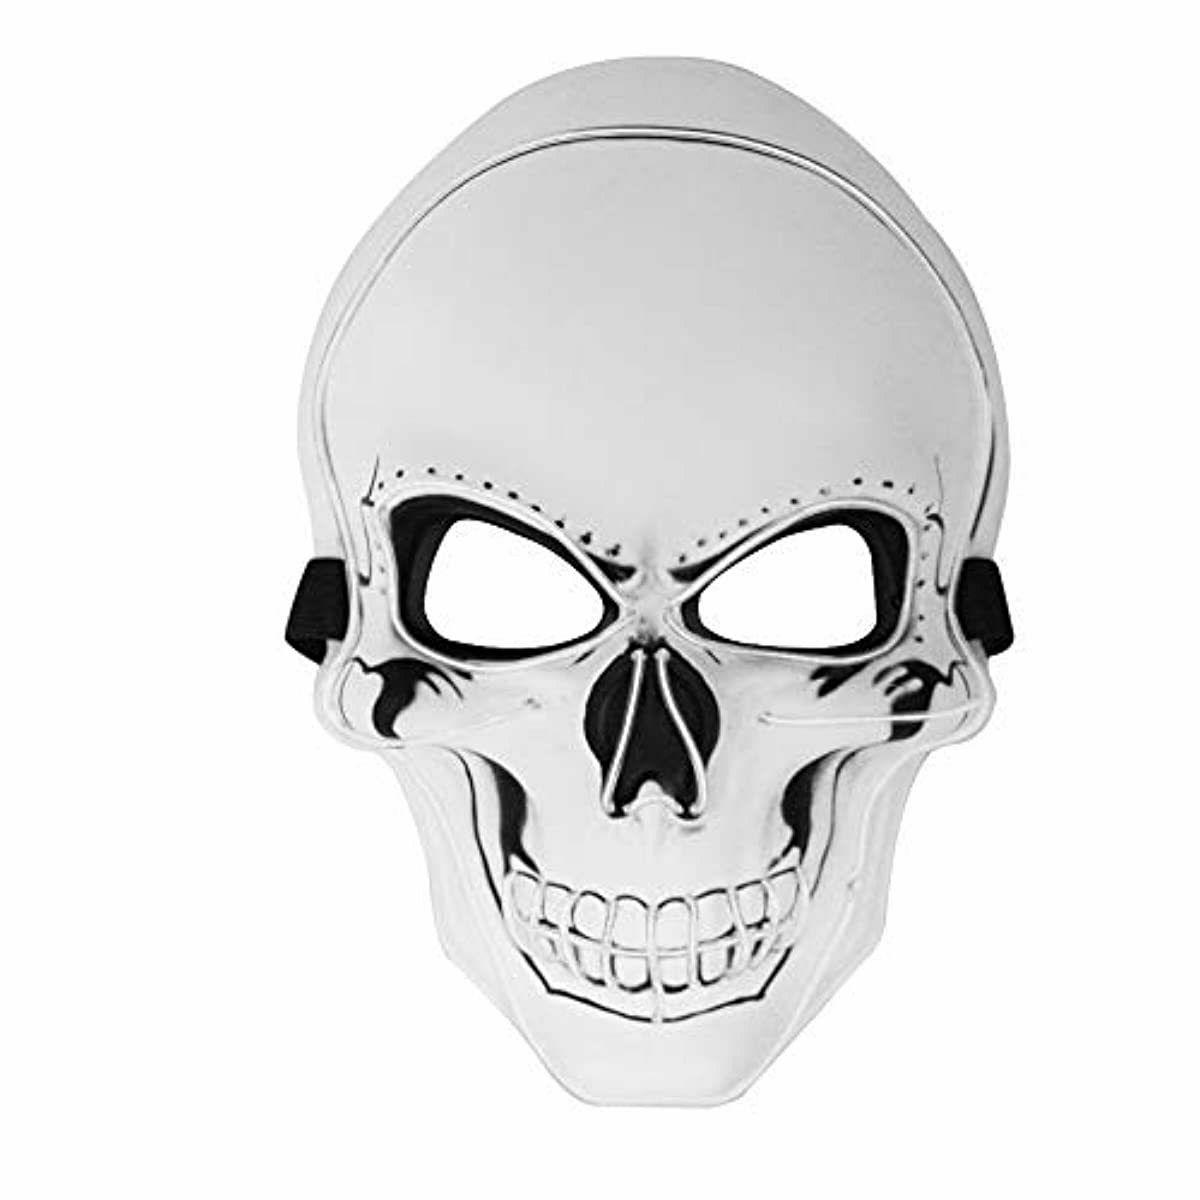 Halloween LED Light Skull Flash EL Wire Costume For Party Cosplay